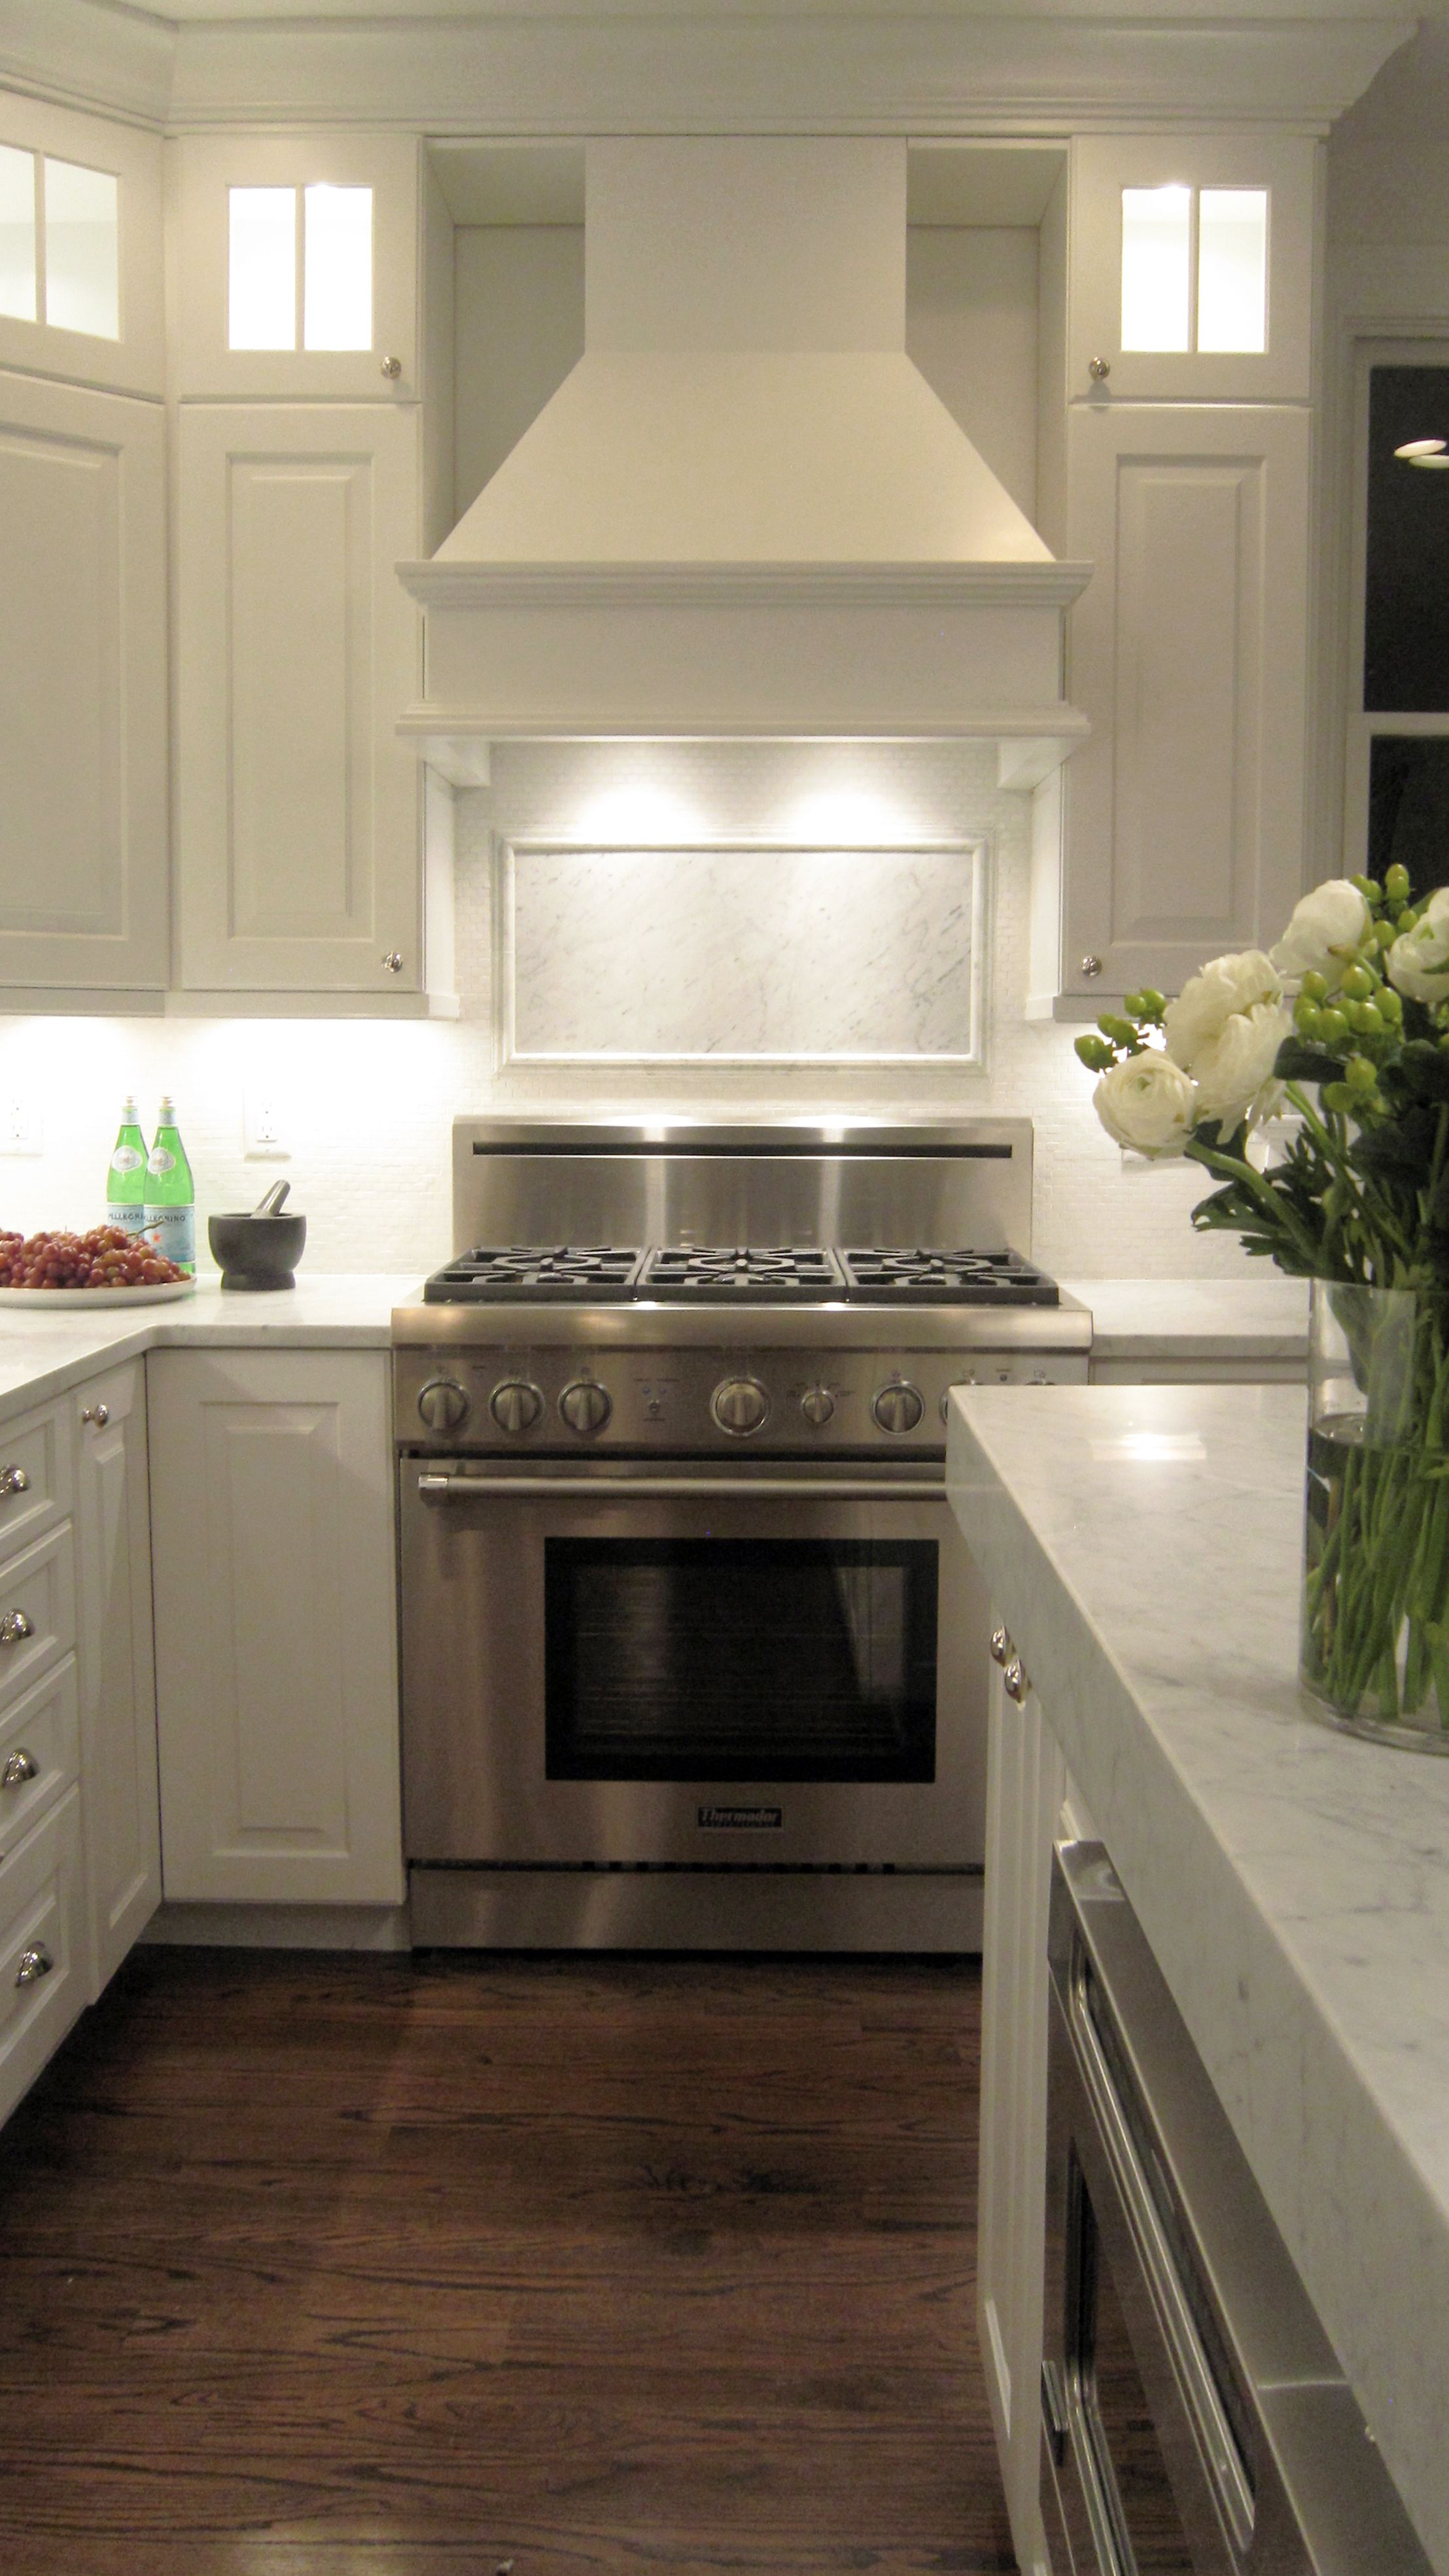 Backsplash Accent Ideas Beacon St Kitchen Carrara Marble Countertops And Accent